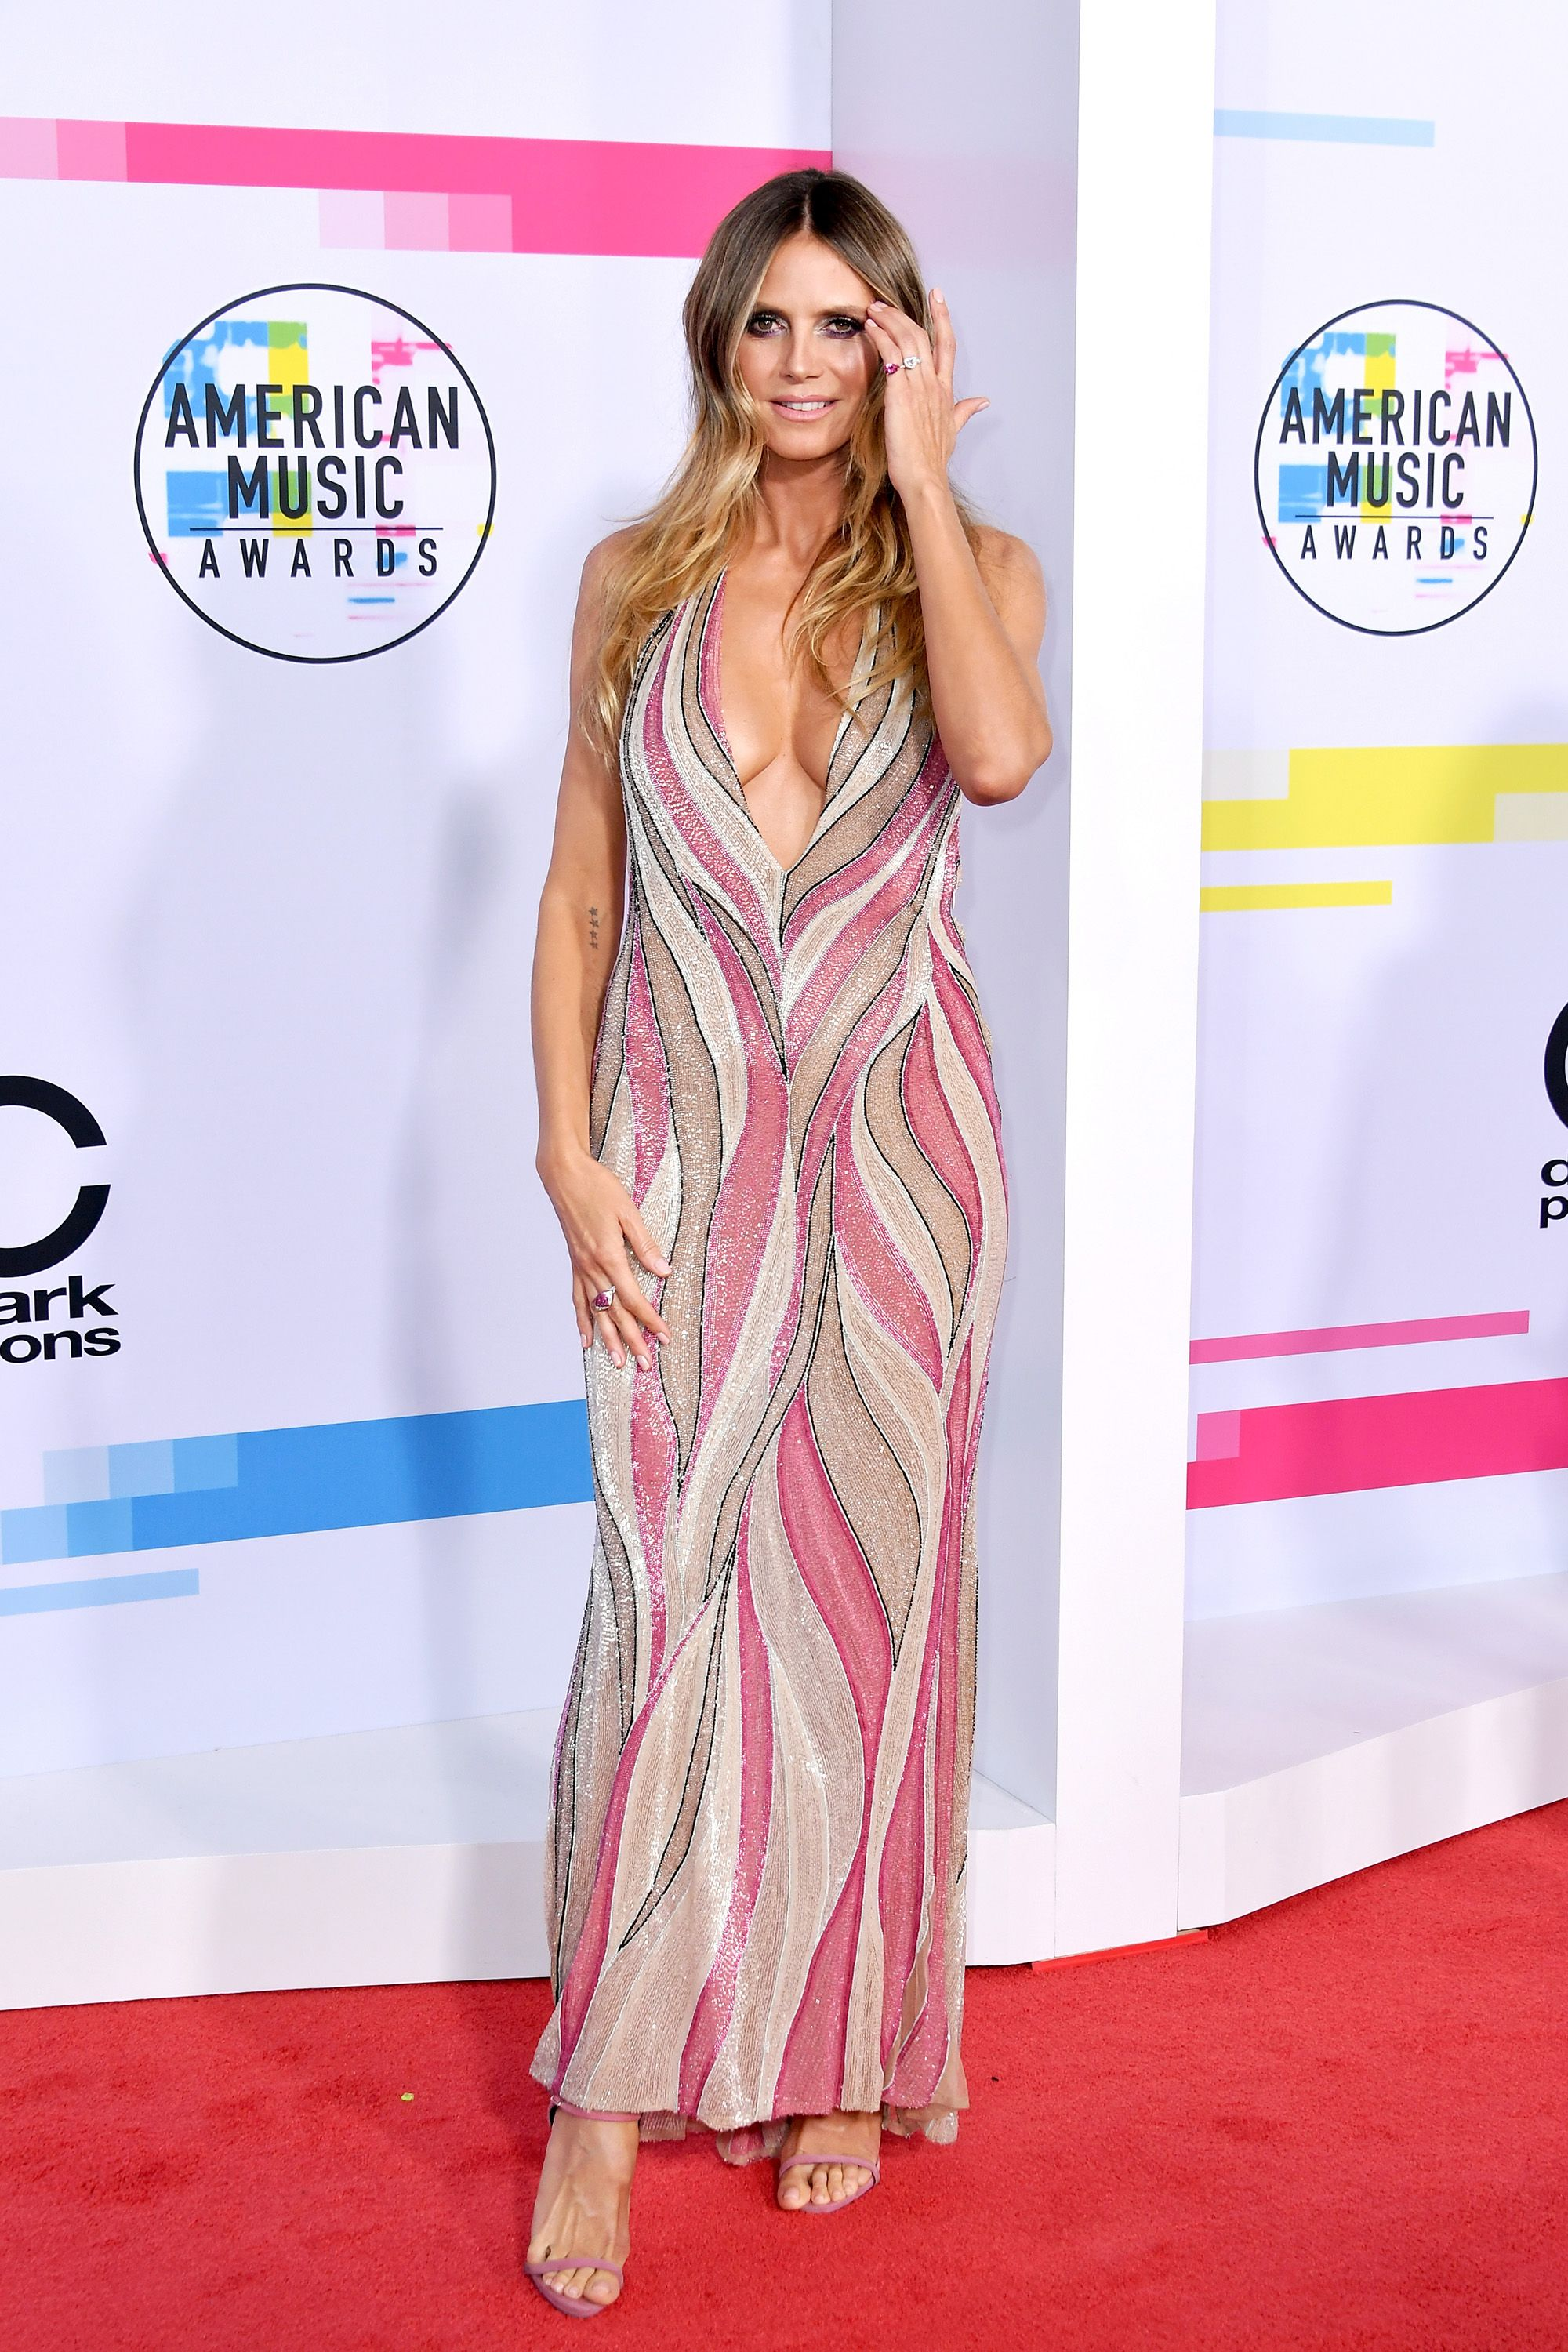 Fashion style Music American awards red carpet style for lady